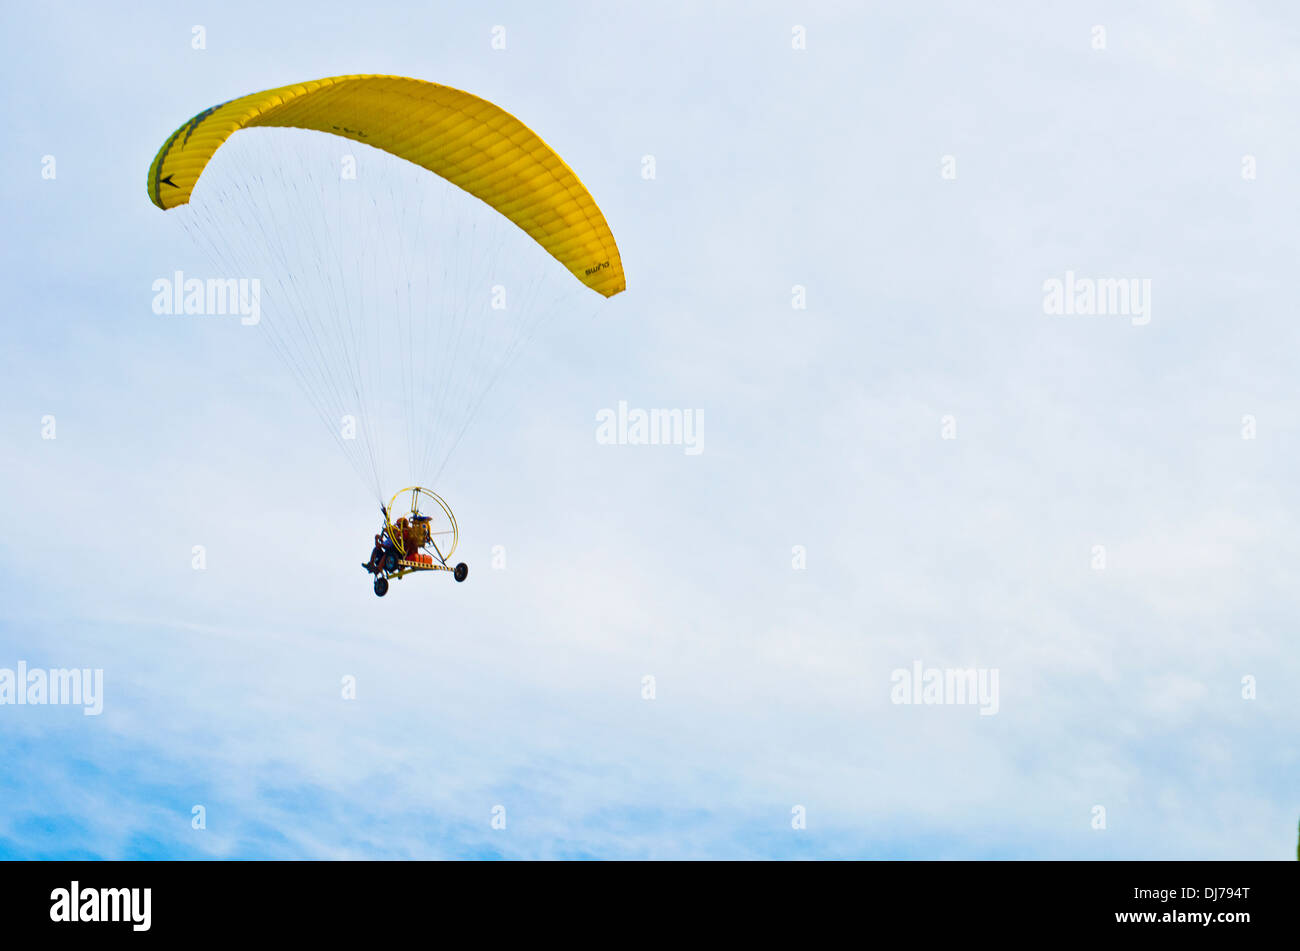 Para glide and para gliding in a clear sky - Stock Image